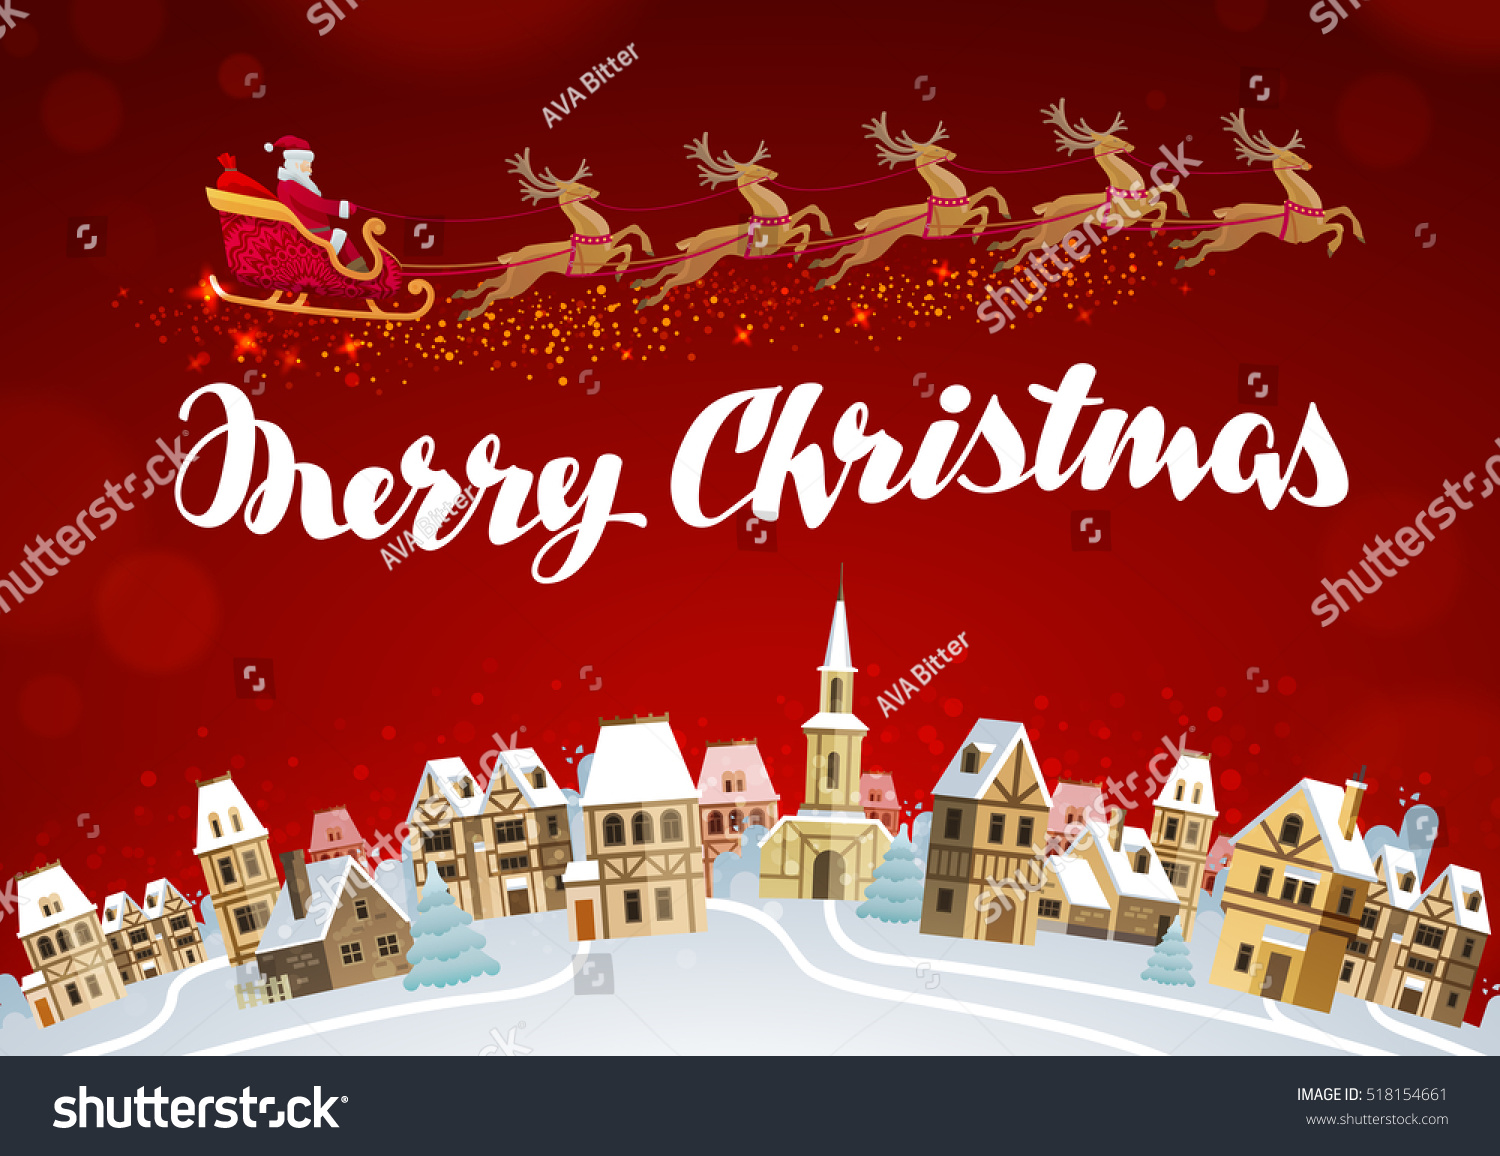 Merry Christmas Xmas Greeting Card Vector Stock Vector 518154661